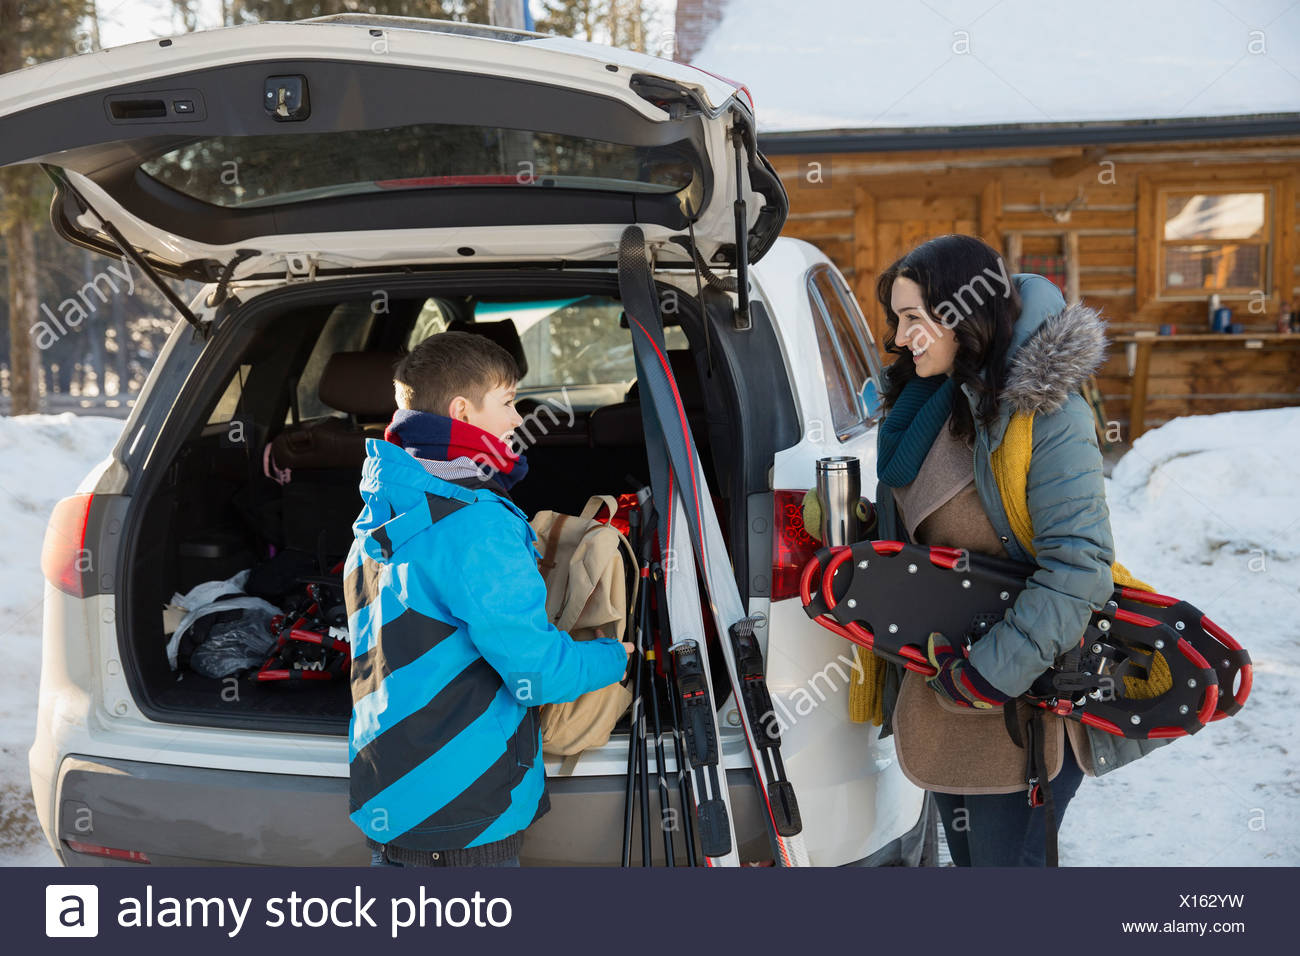 Mother and son unloading winter sports gear from car - Stock Image